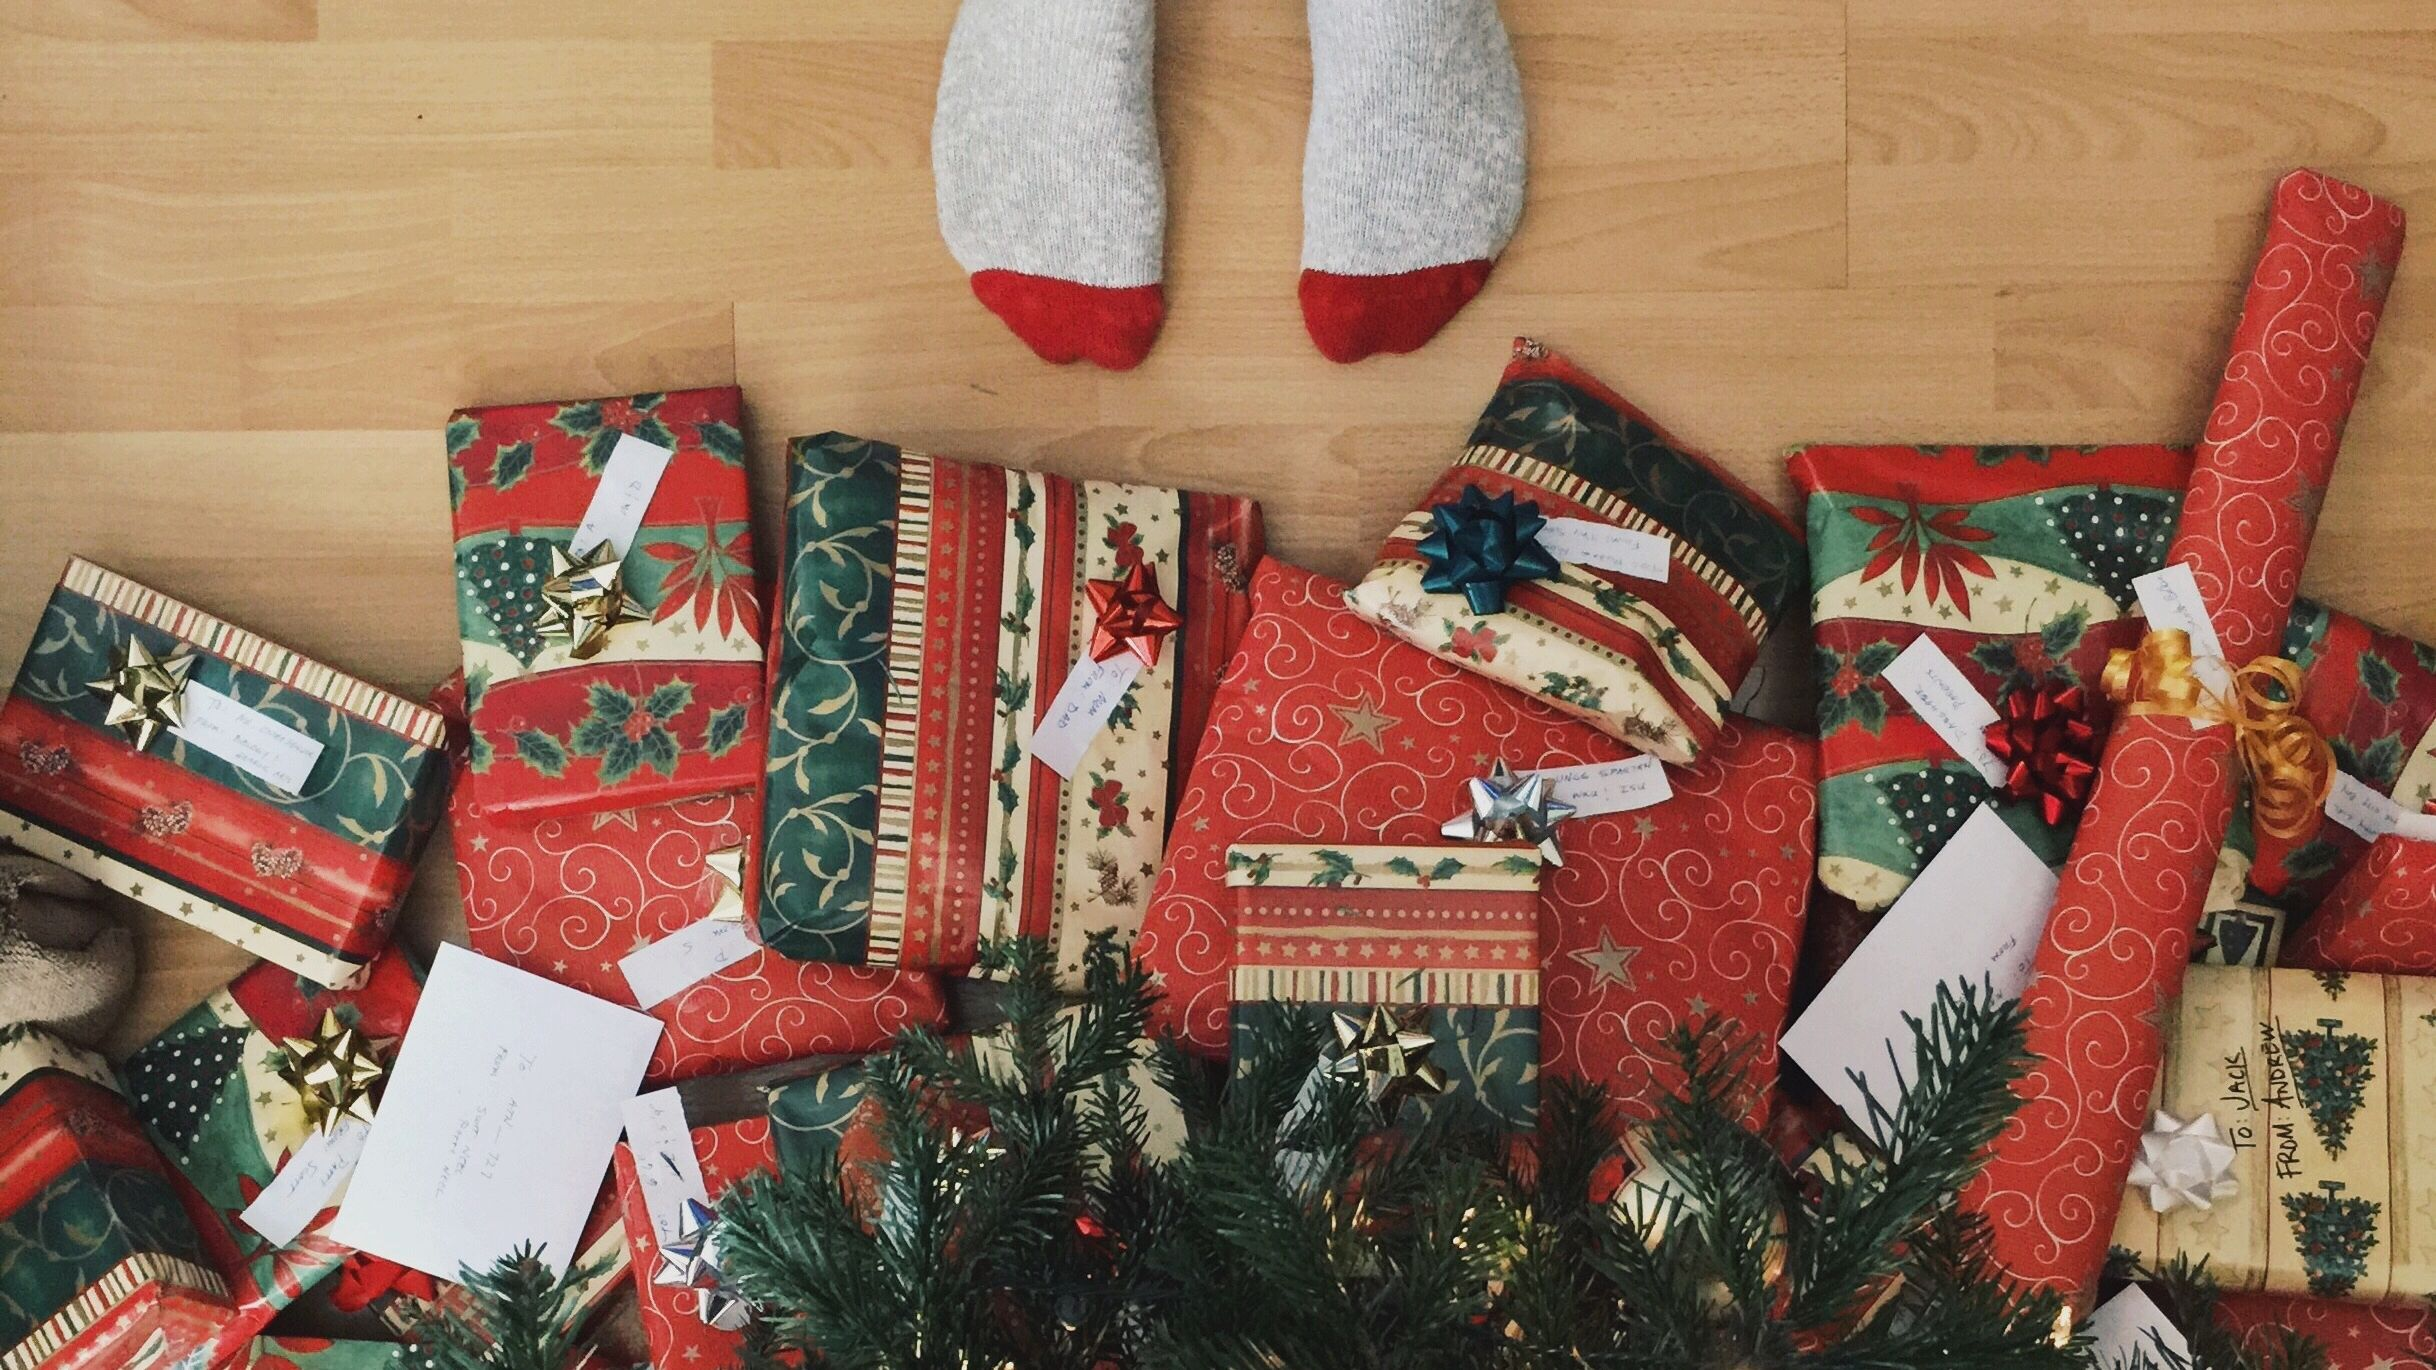 feets in socks underneath christmas tree with many wrapped presents